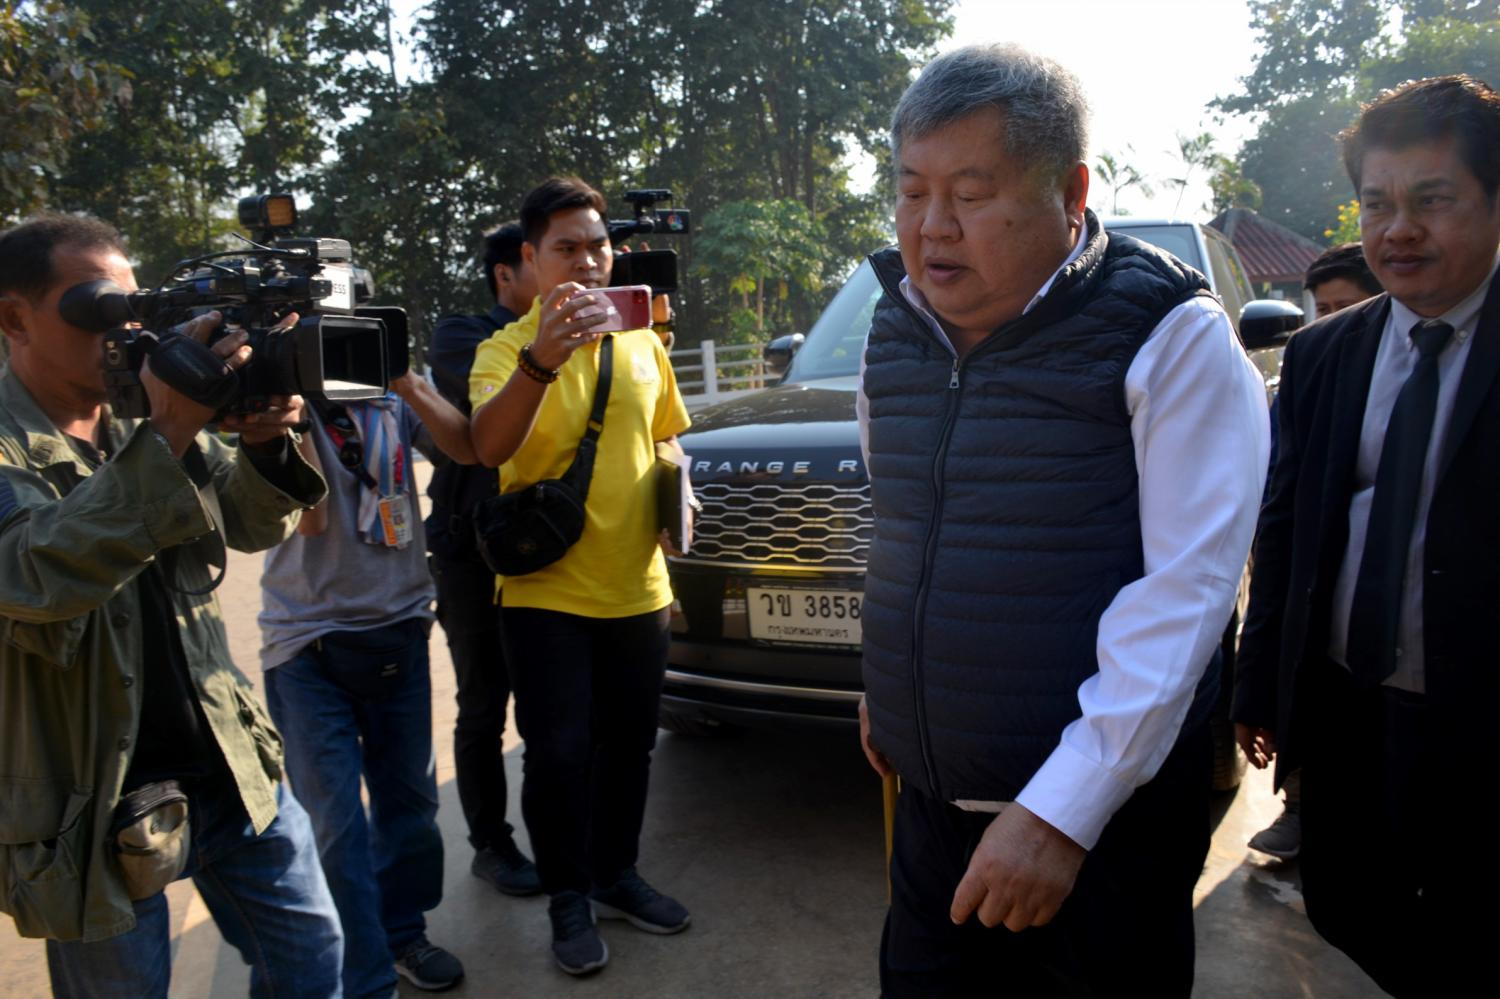 Construction tycoon Premchai Karnasuta arrives at Thong Pha Phum Court to hear a ruling on Thursday on his appeal against a lower court ruling in a high-profile 2018 wildlife poaching case. PIYARACH CHONGCHAROEN